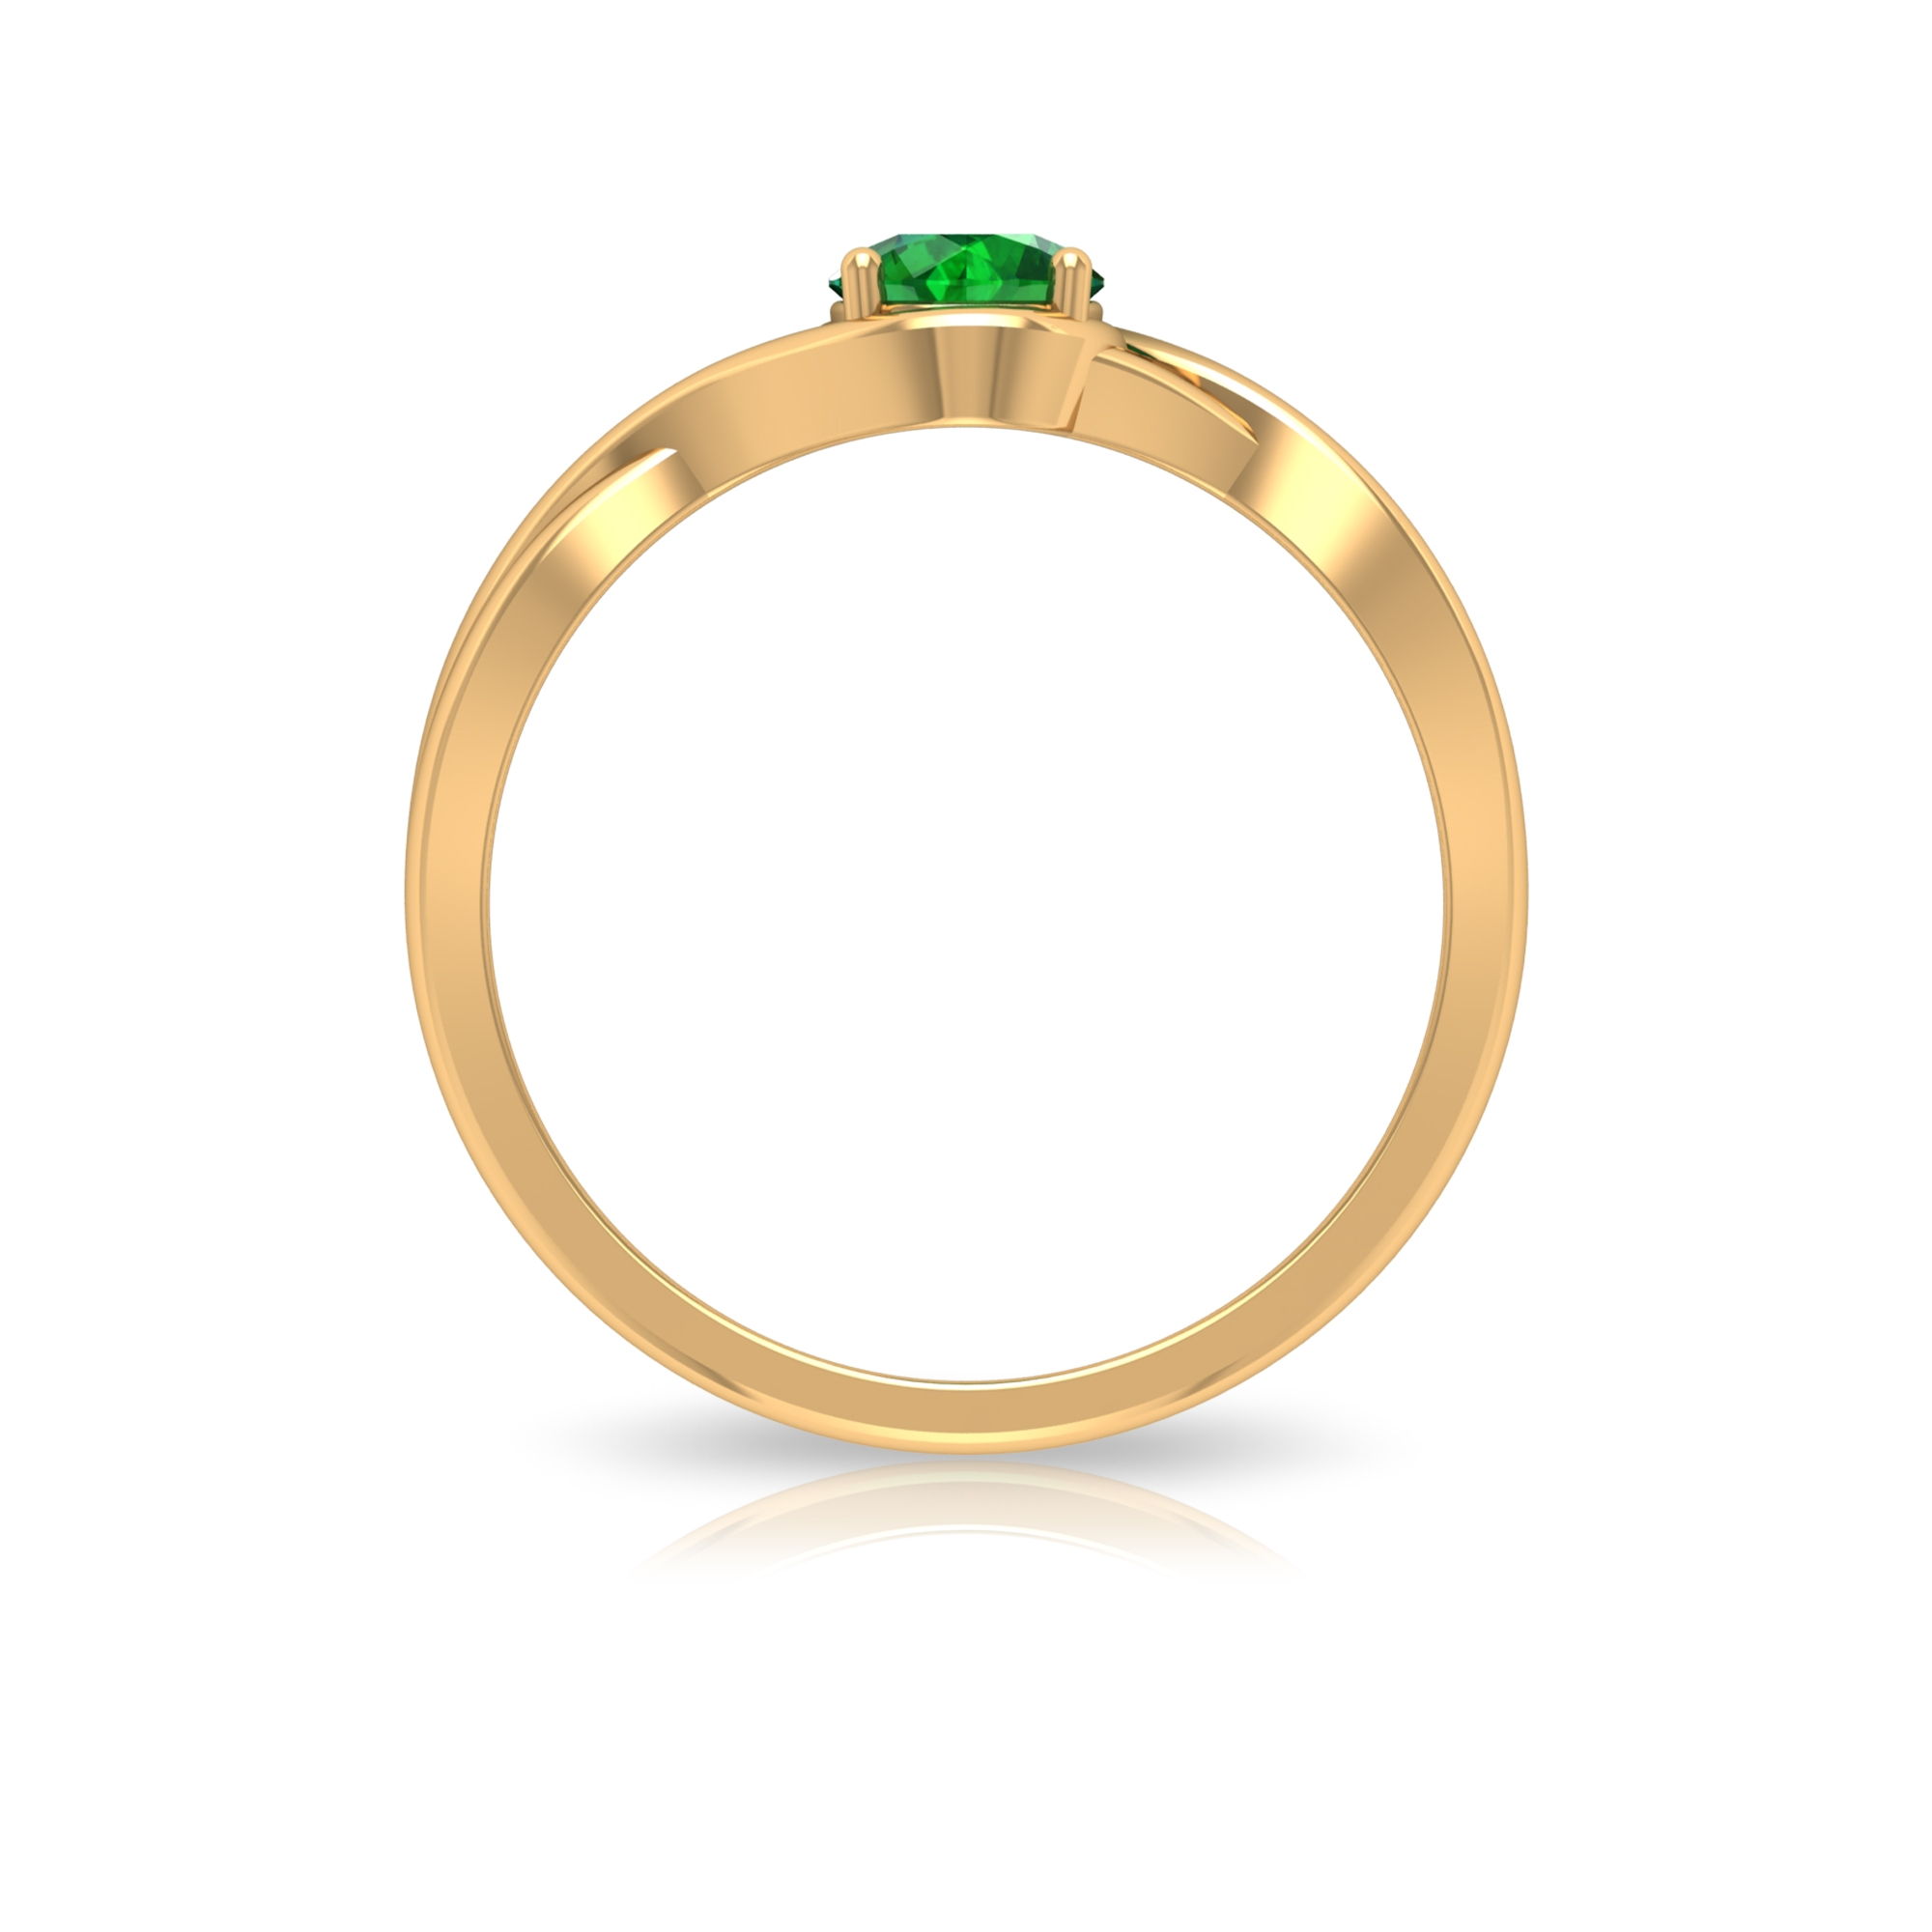 5 MM Round Shape Emerald Solitaire Ring in Four Prong Setting with Crossover Shank